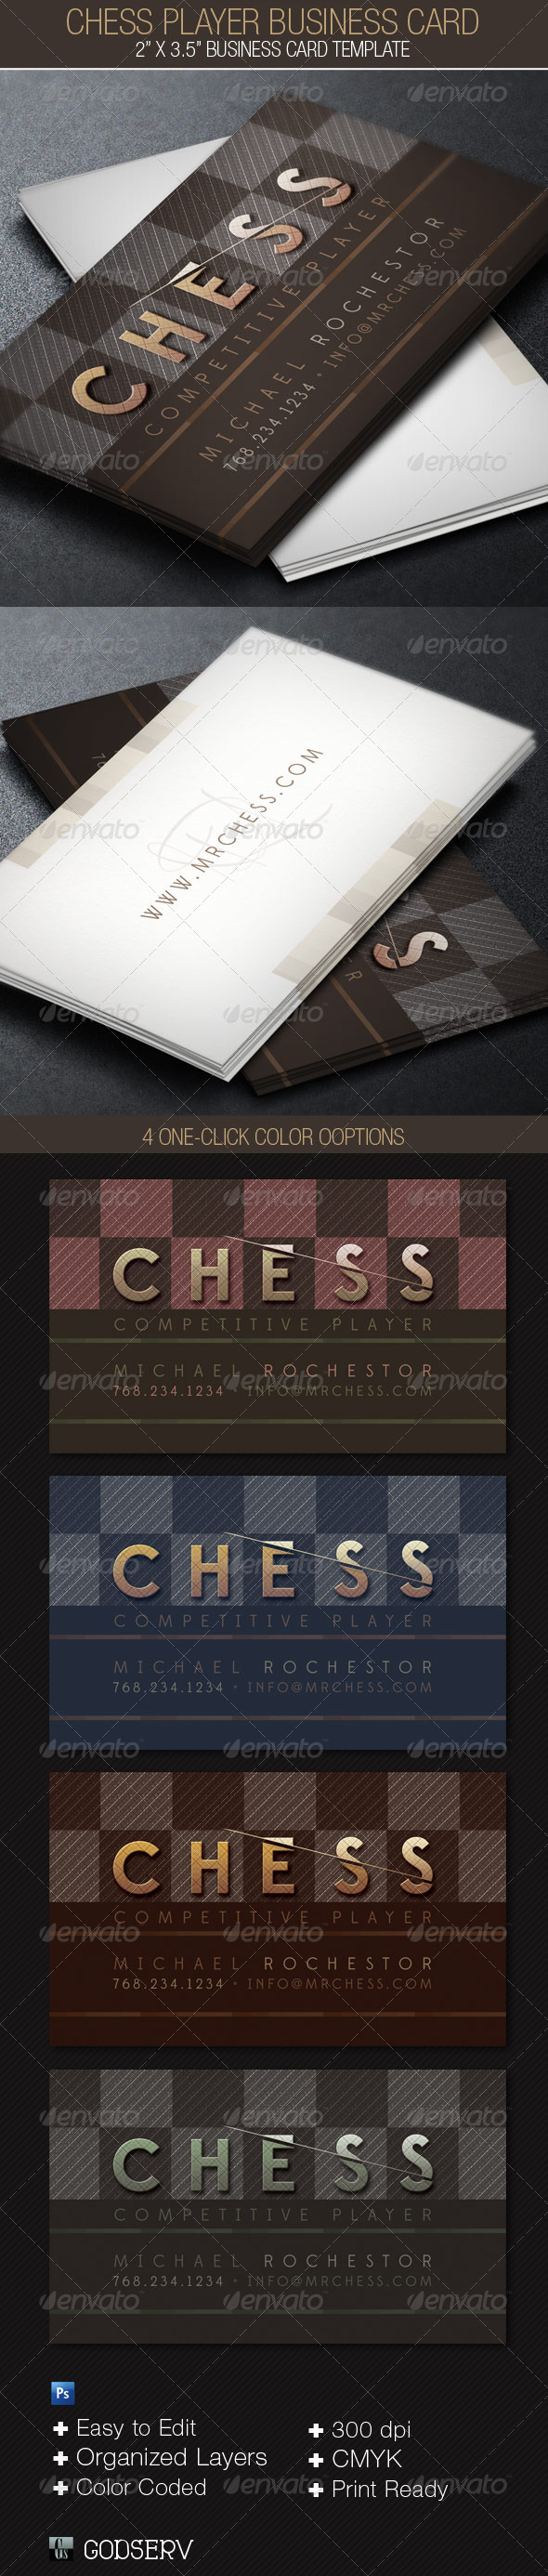 GraphicRiver Chess Player Business Card Template 4089414